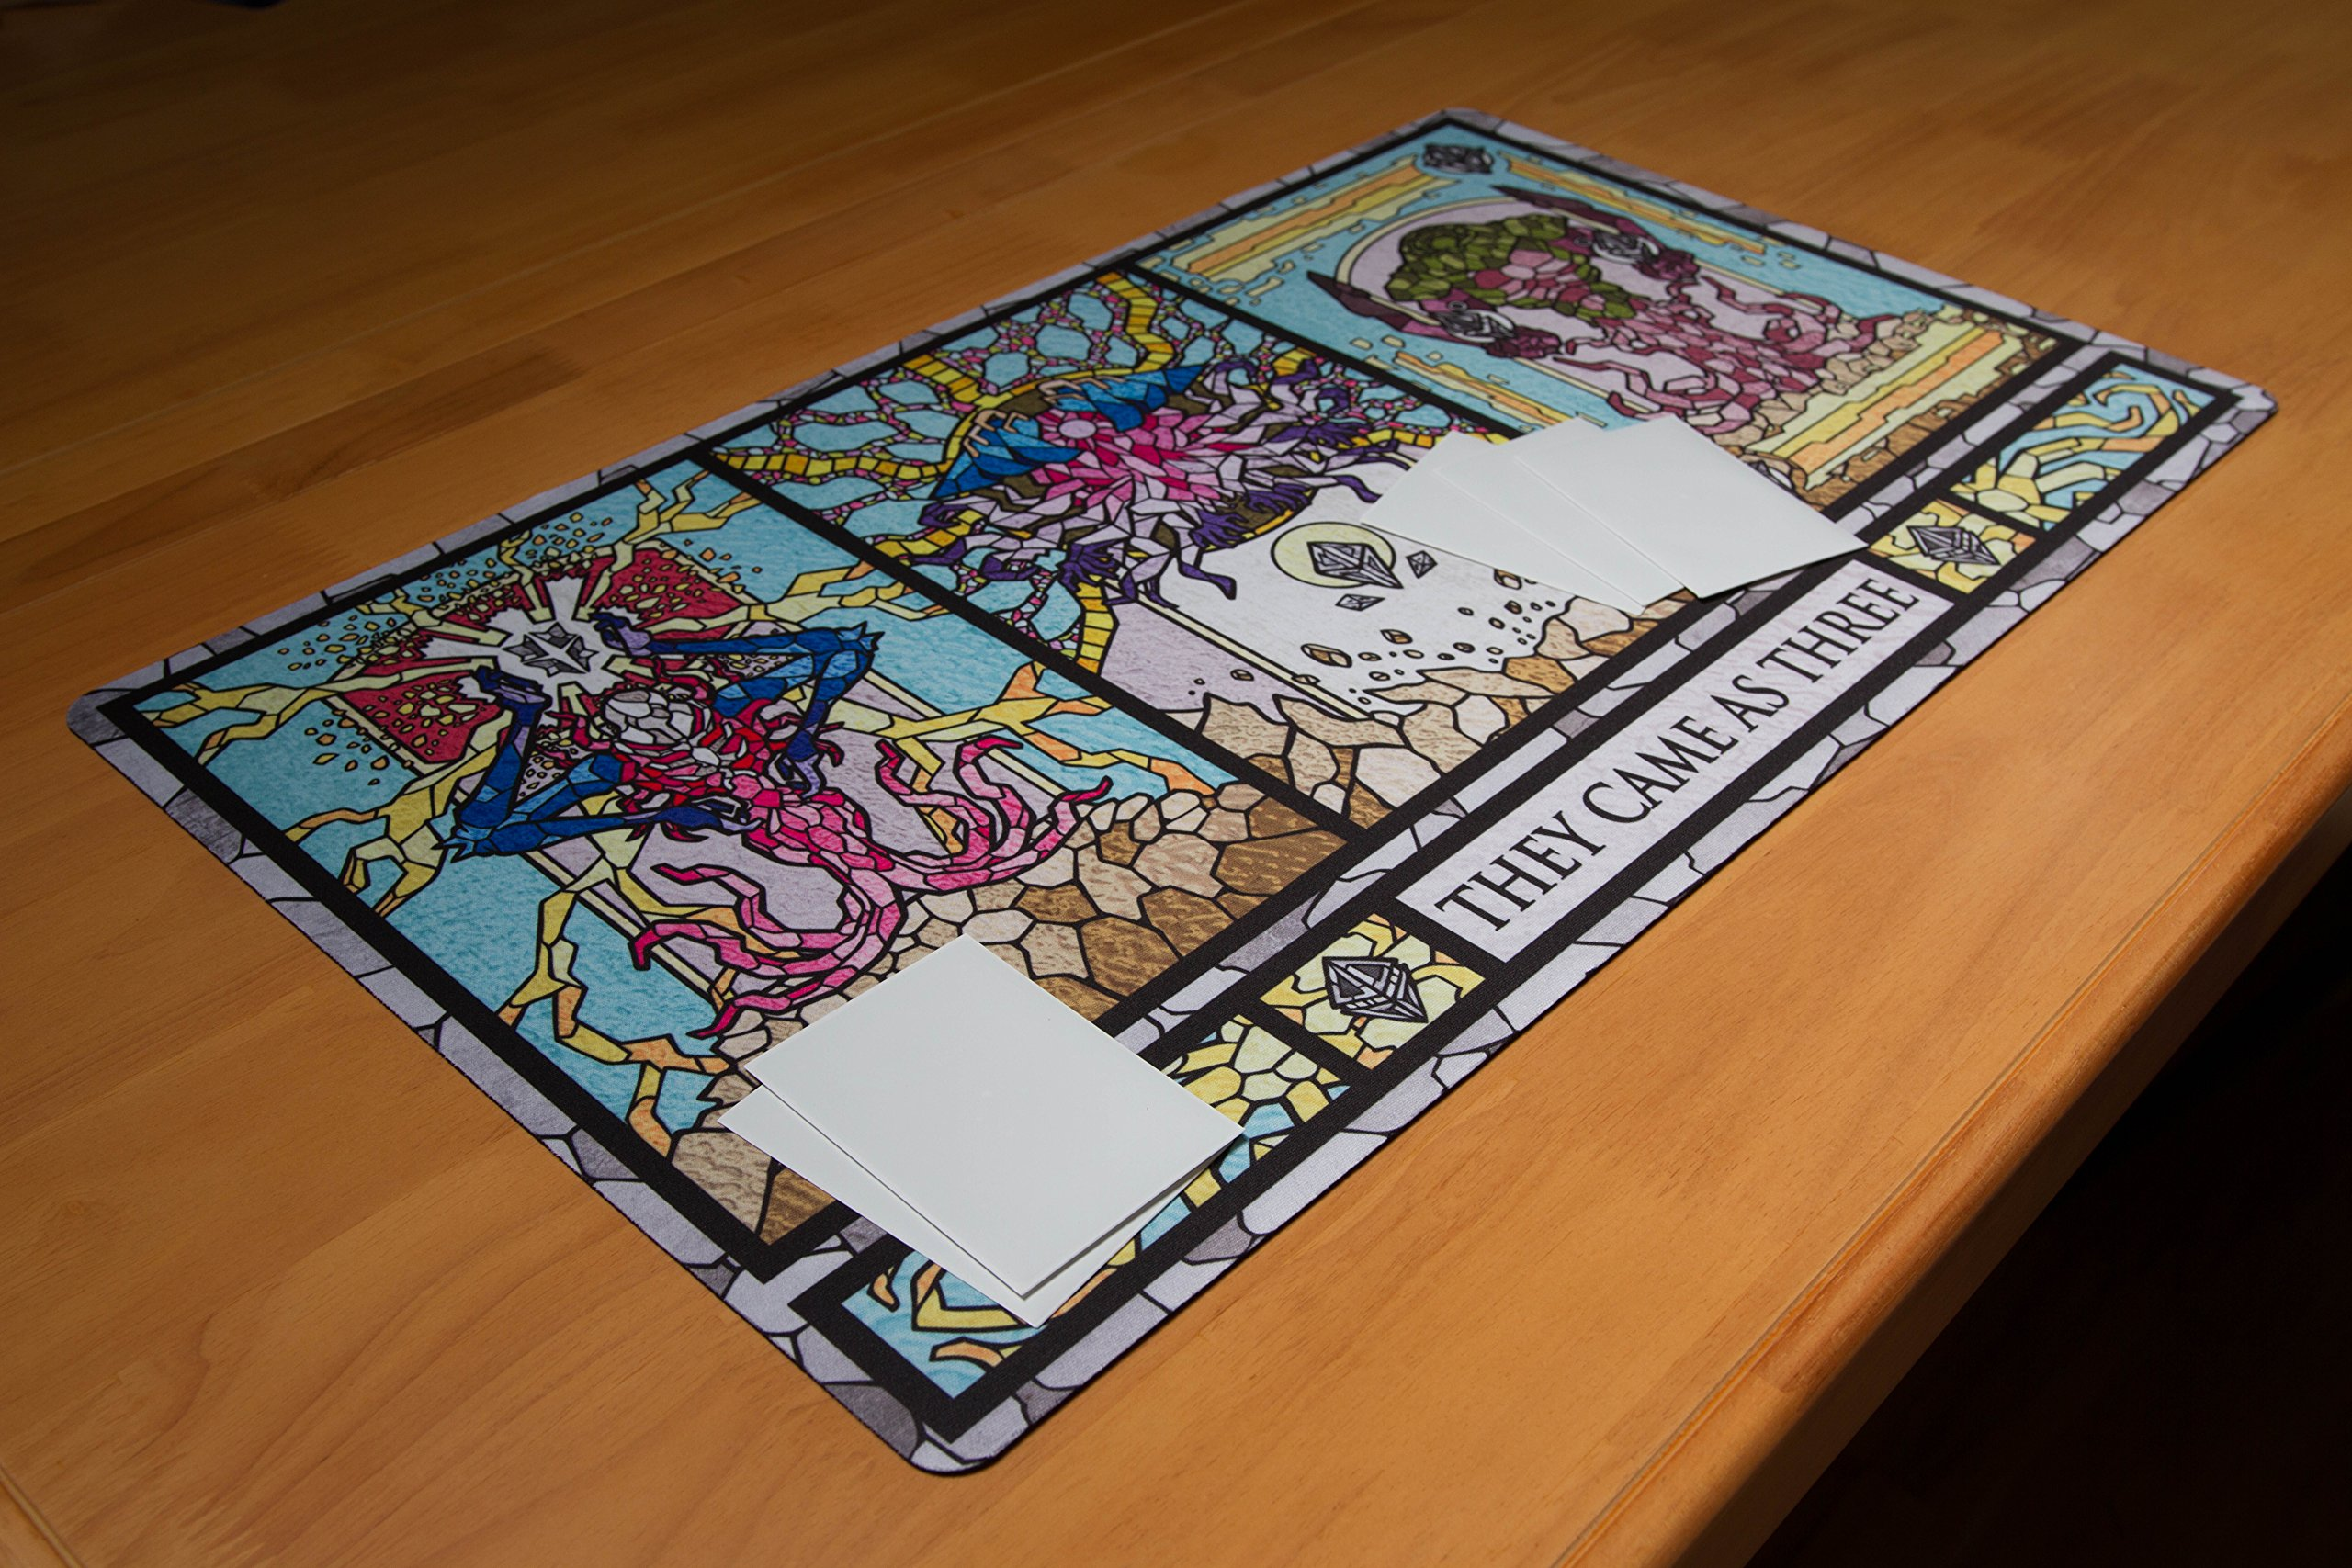 Inked Playmats Stained Glass Titans Card Playmat - Inked Gaming Perfect for Card Gaming TCG Game Mat by Inked Playmats (Image #5)